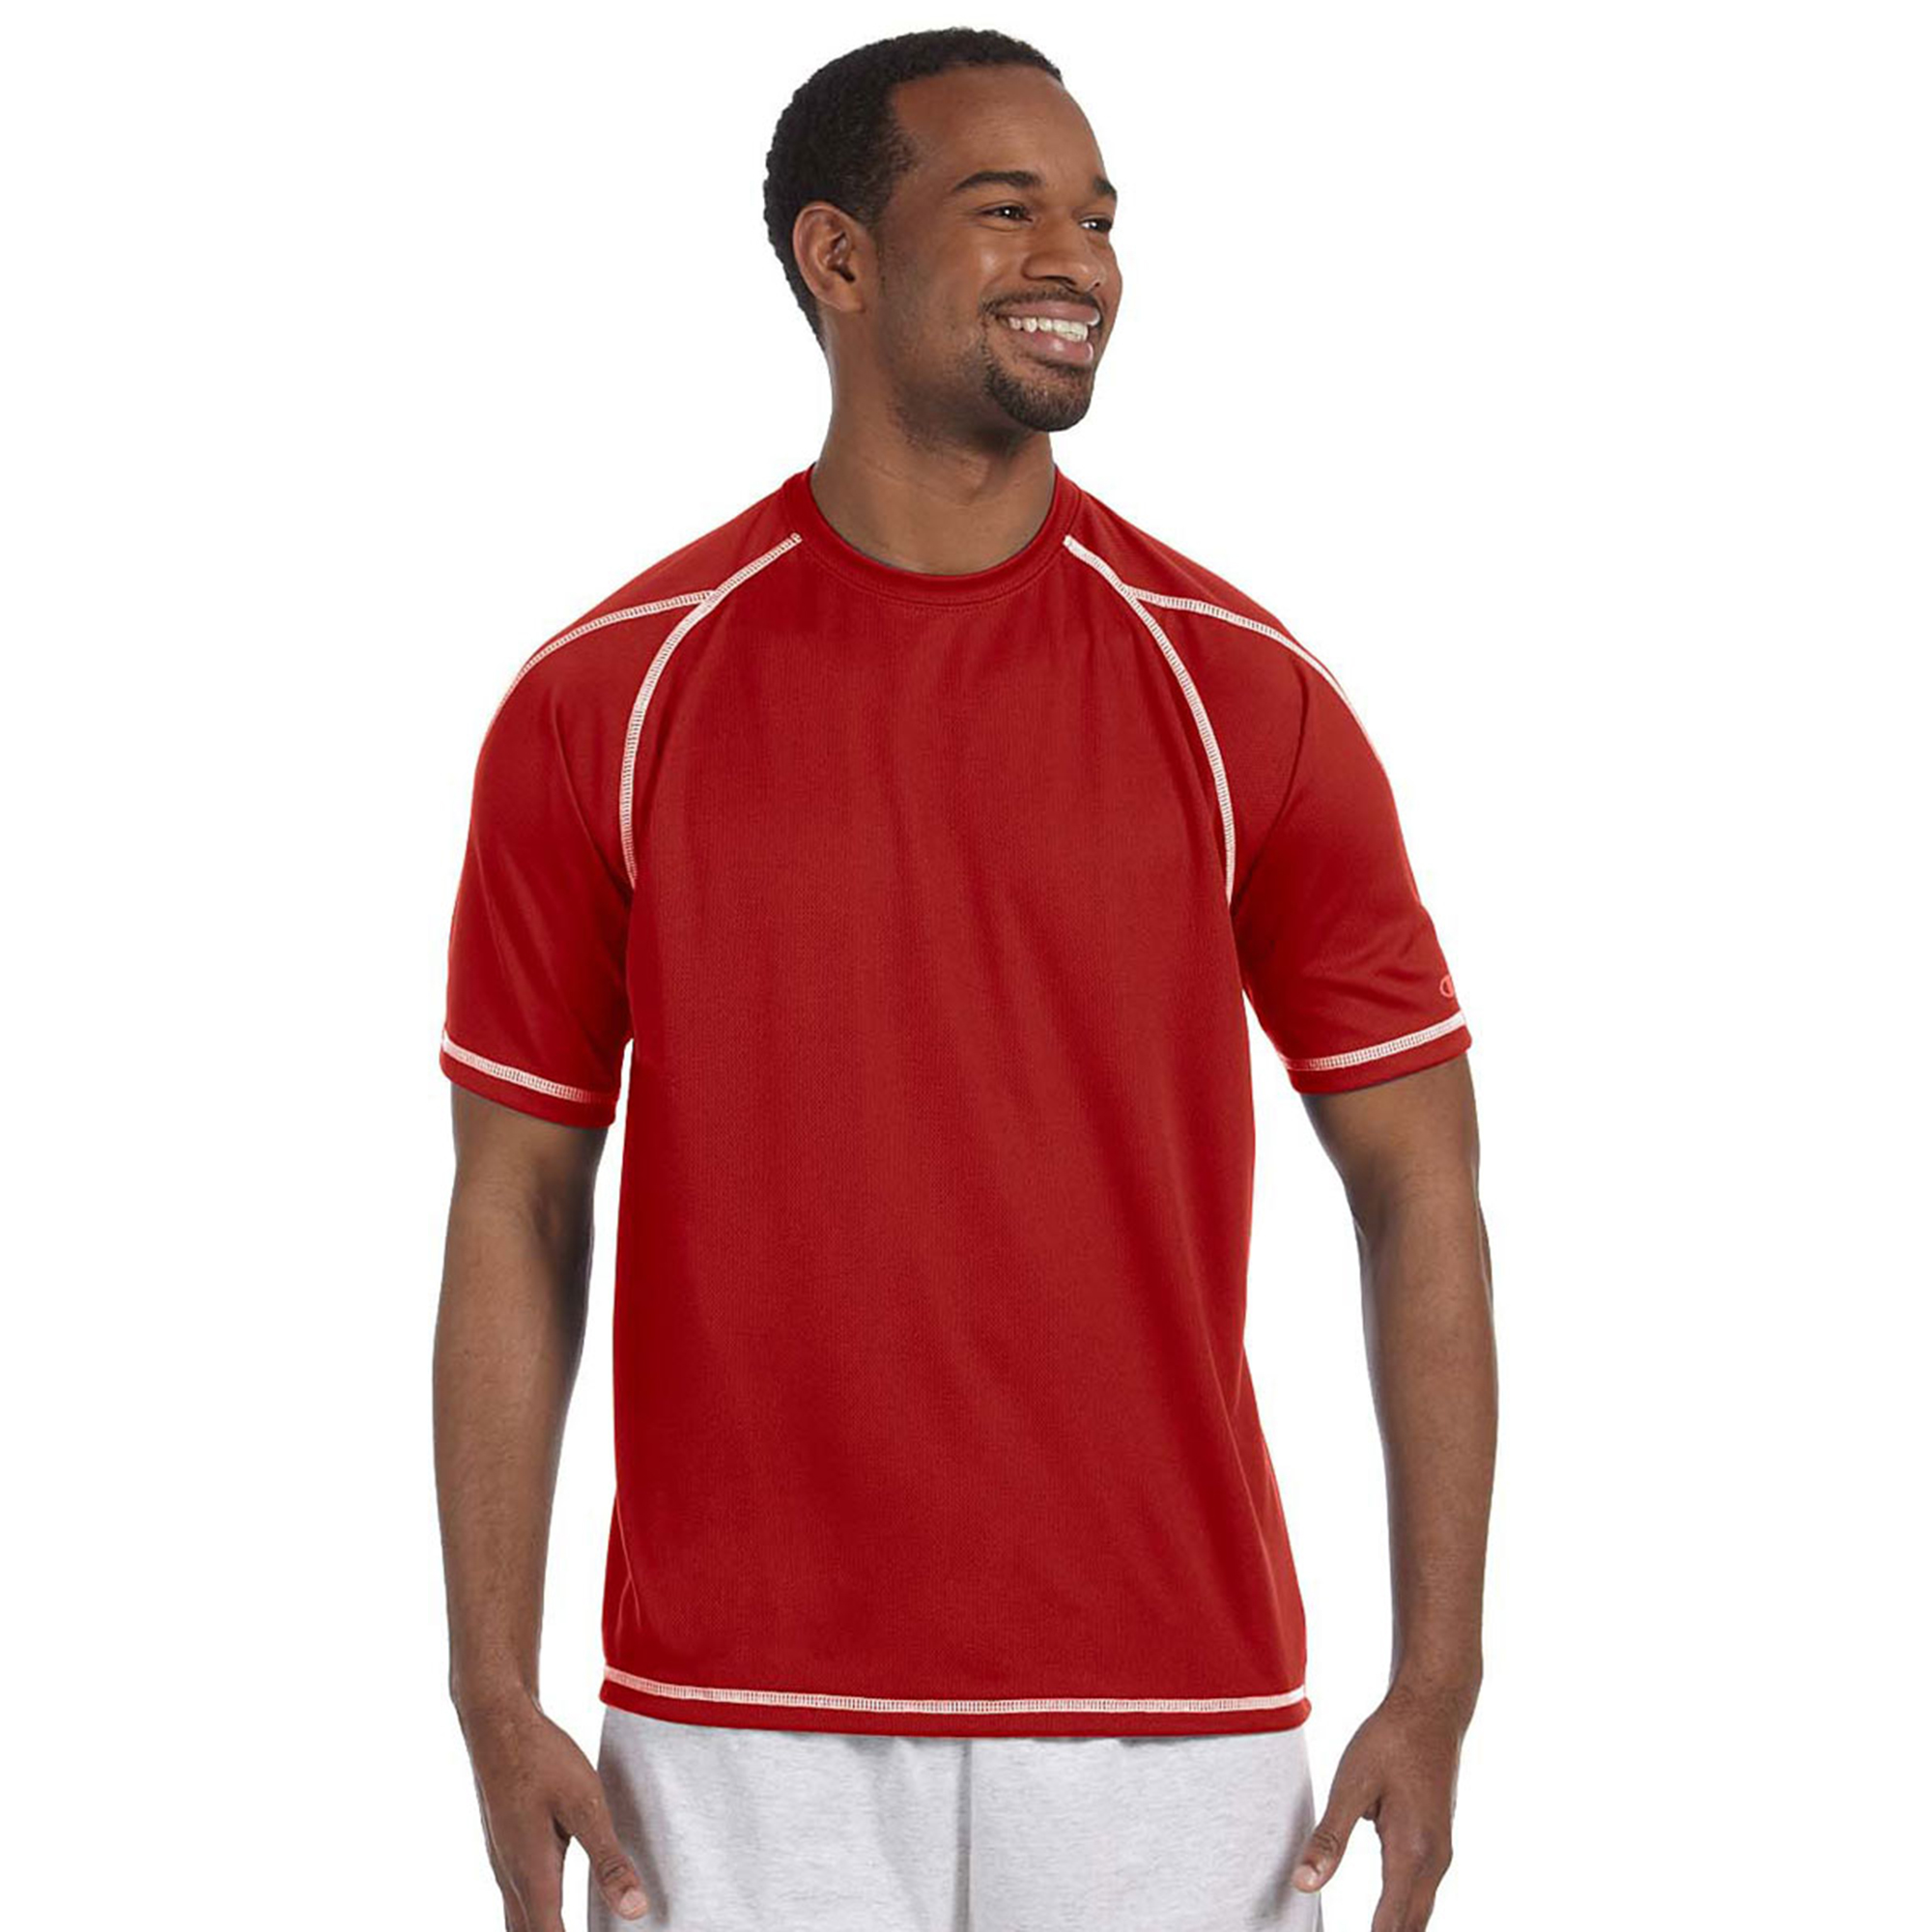 Champion Champion Short Sleeve 4.1 oz Double Dry Muscle Shirt with Odor Resistance T2057